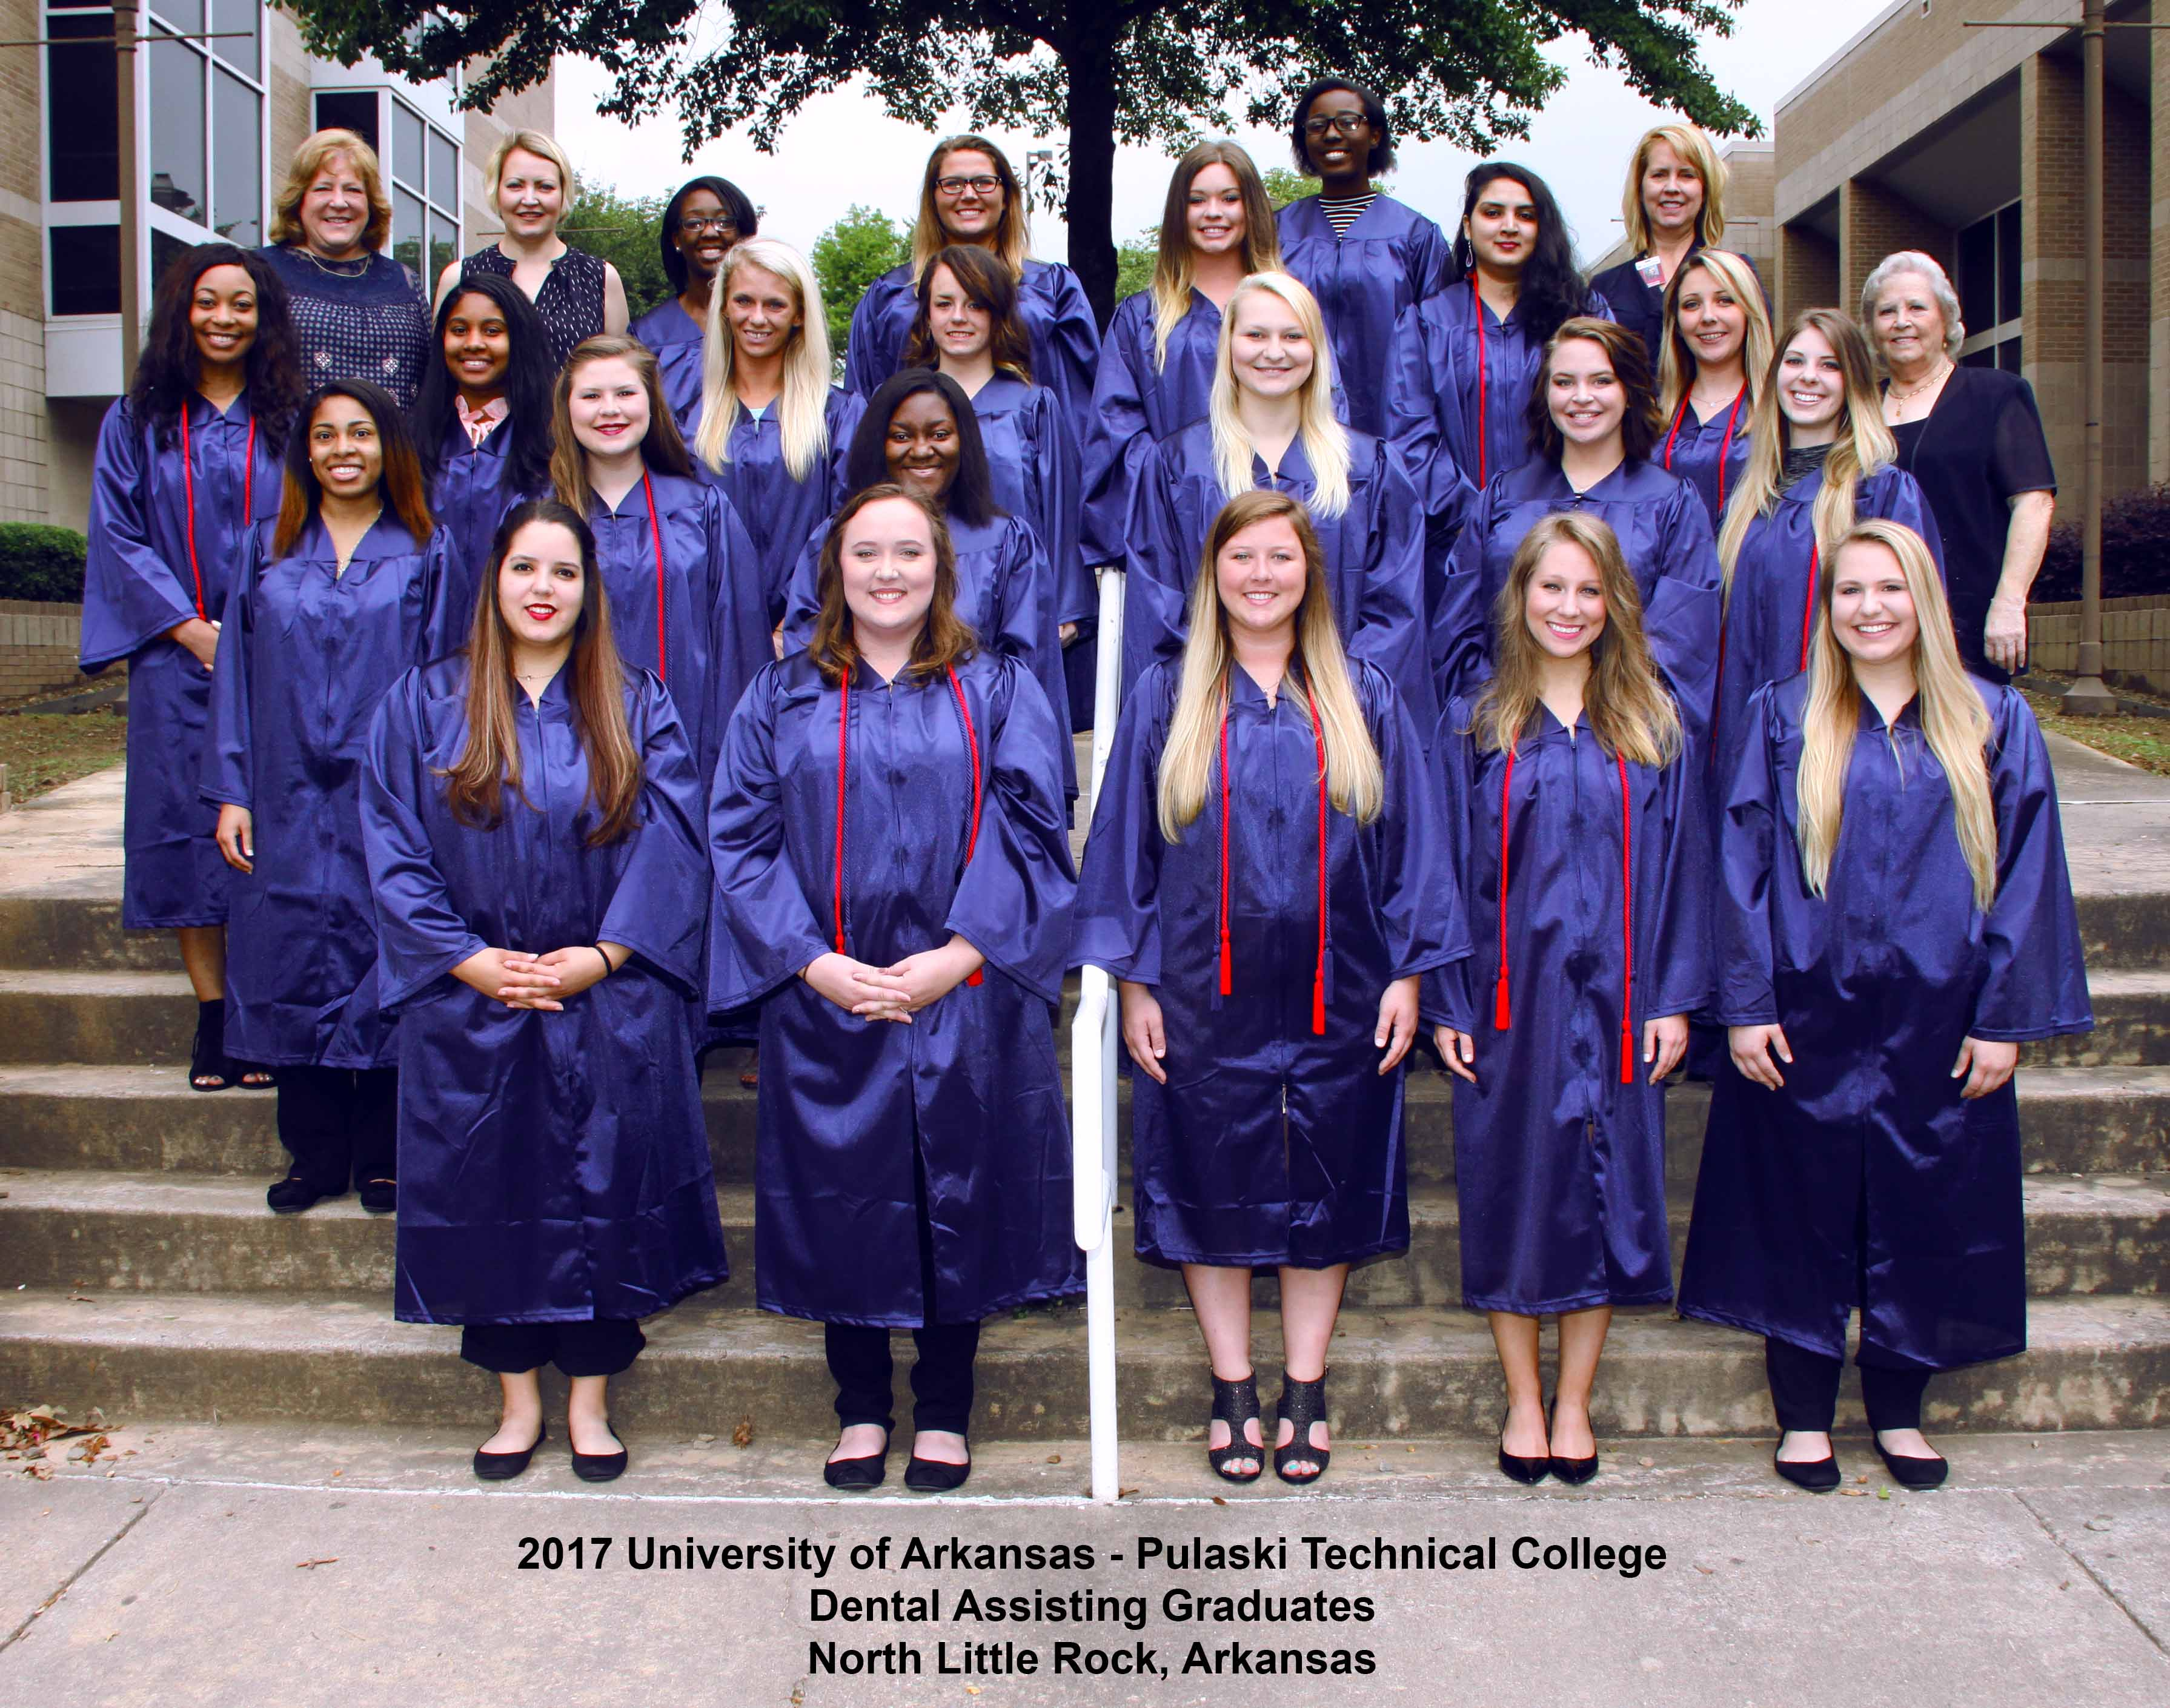 Dental Assisting Graduates